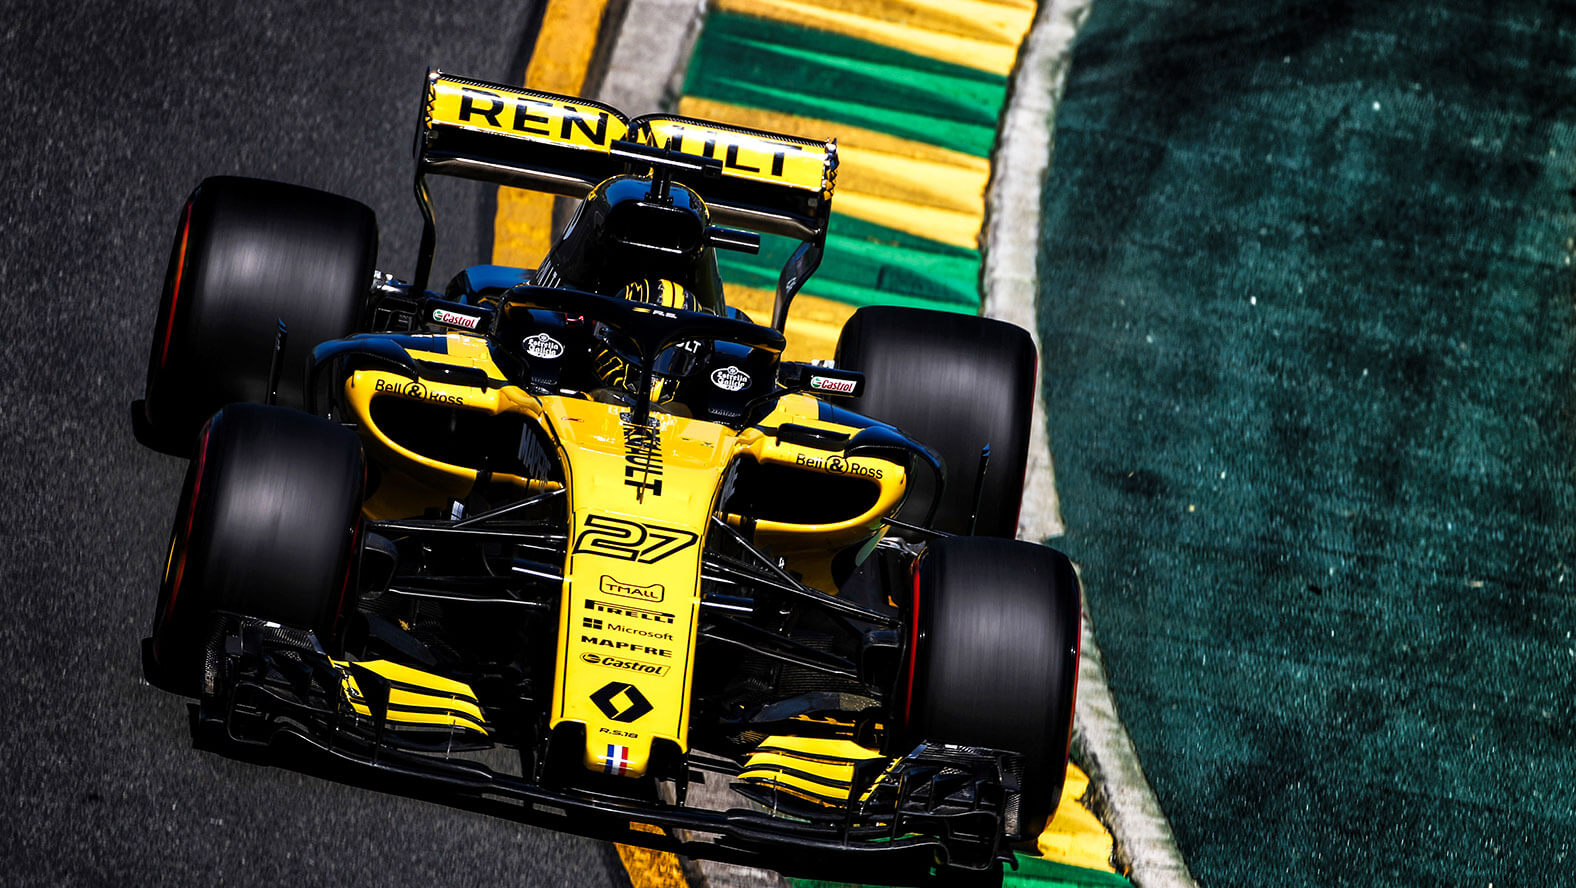 Renault Sport Formula One™ Team has relied on Roland DG for its racing car vehicle graphics.